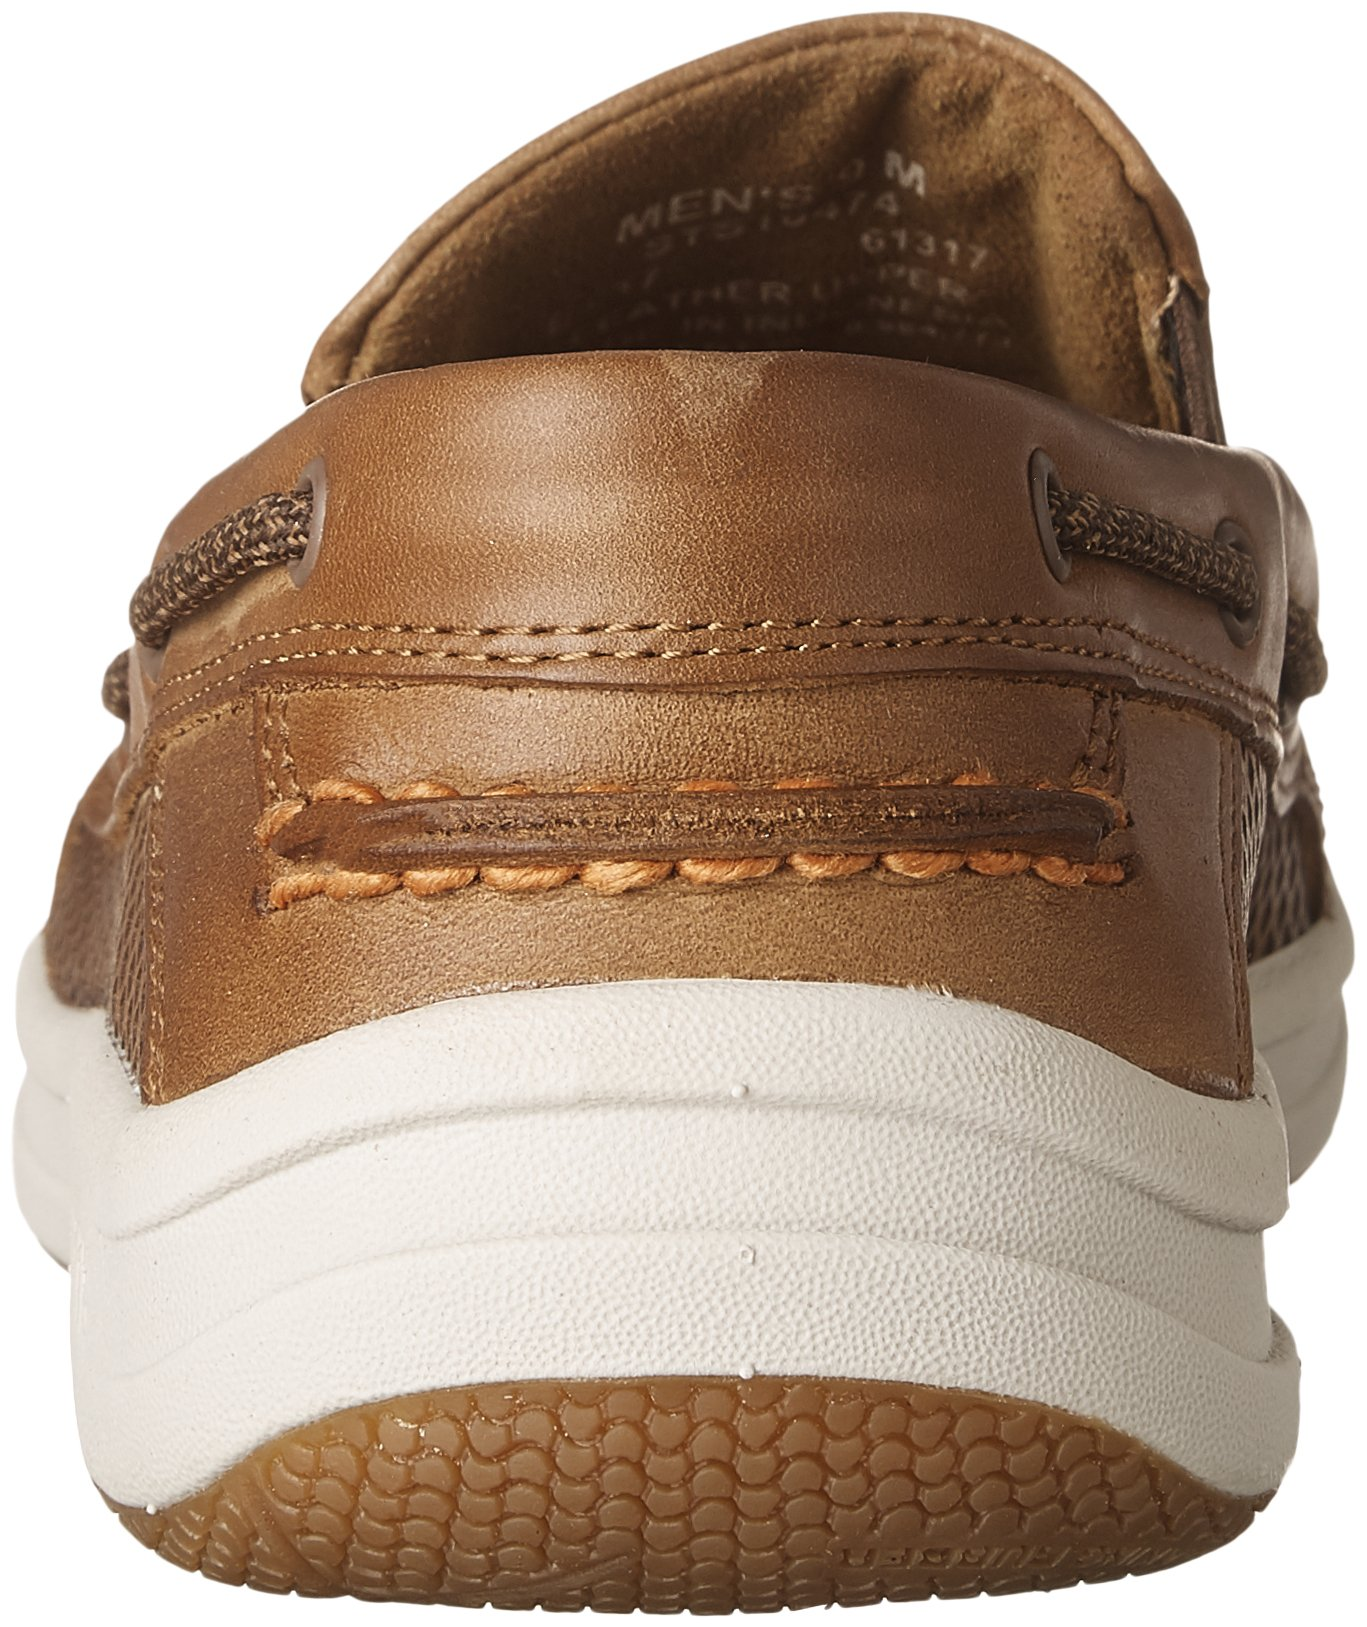 Sperry Top-Sider Men's Gamefish Slip On Boat Shoe, Dark Tan, 10.5 M US by Sperry Top-Sider (Image #2)